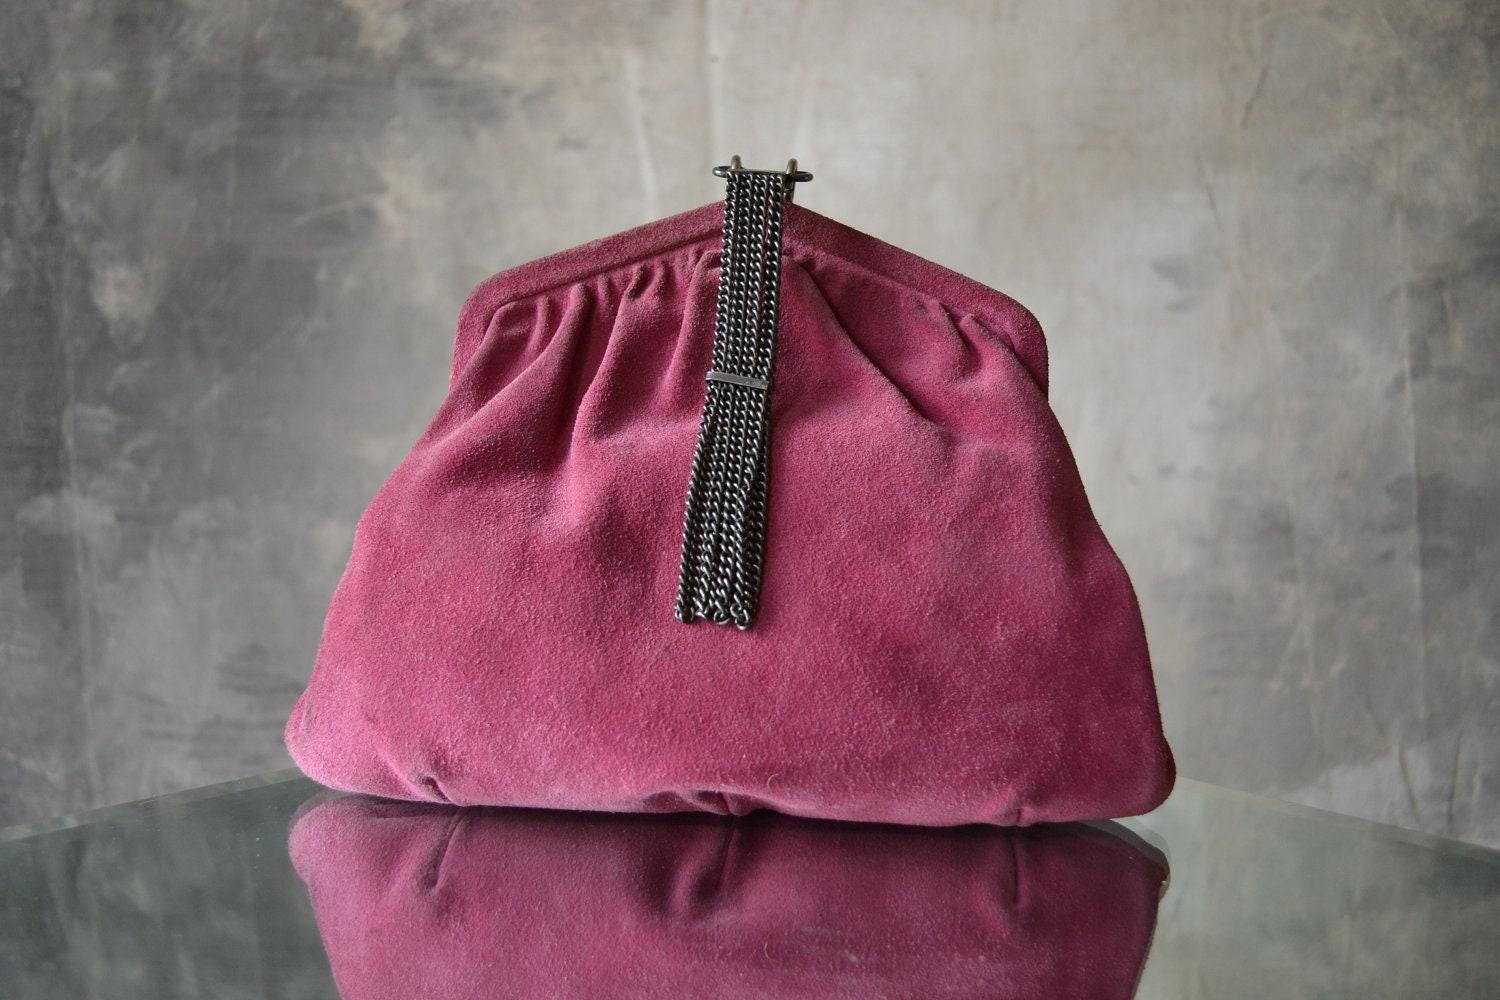 magenta suede vintage purse with metal chain clasp